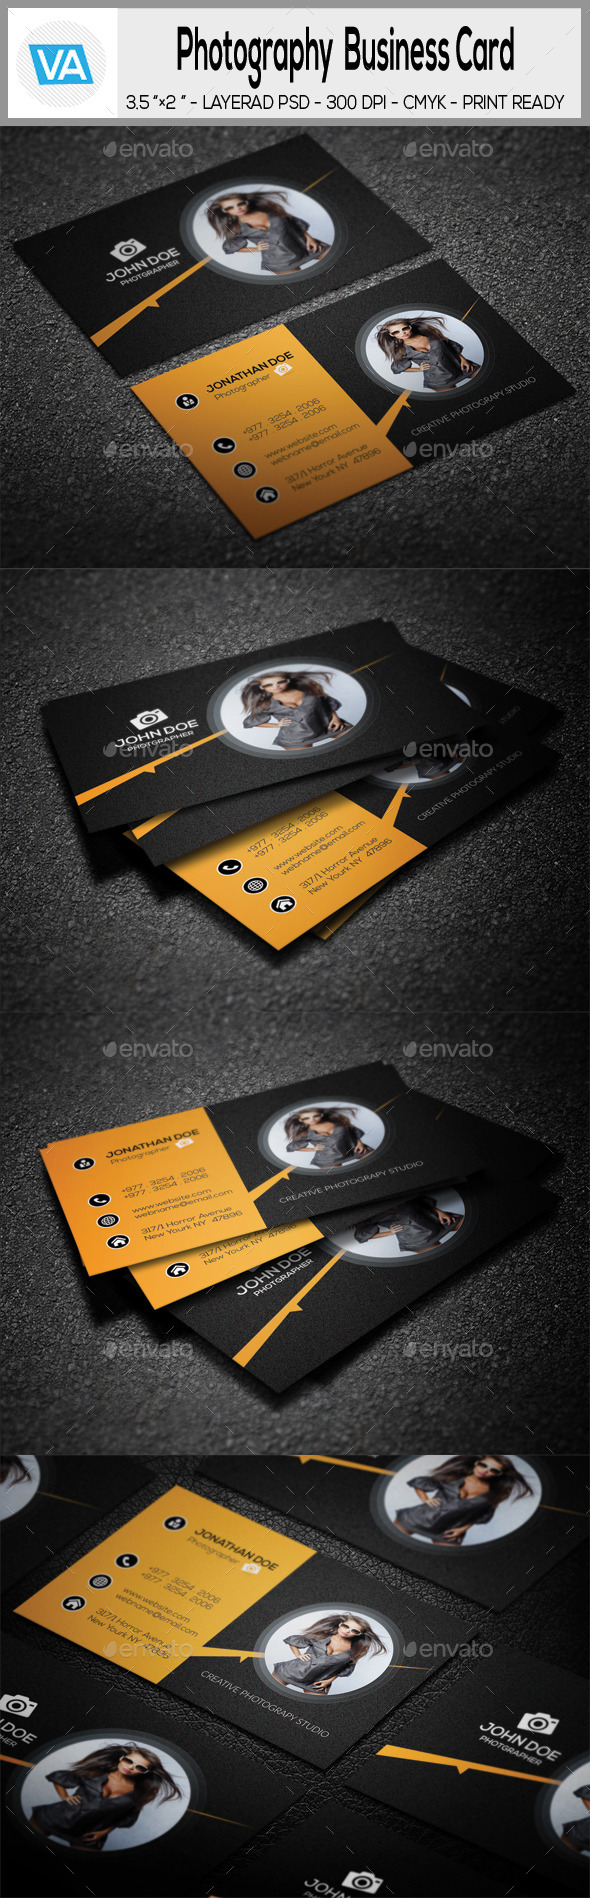 GraphicRiver Photography Business Card 10721543